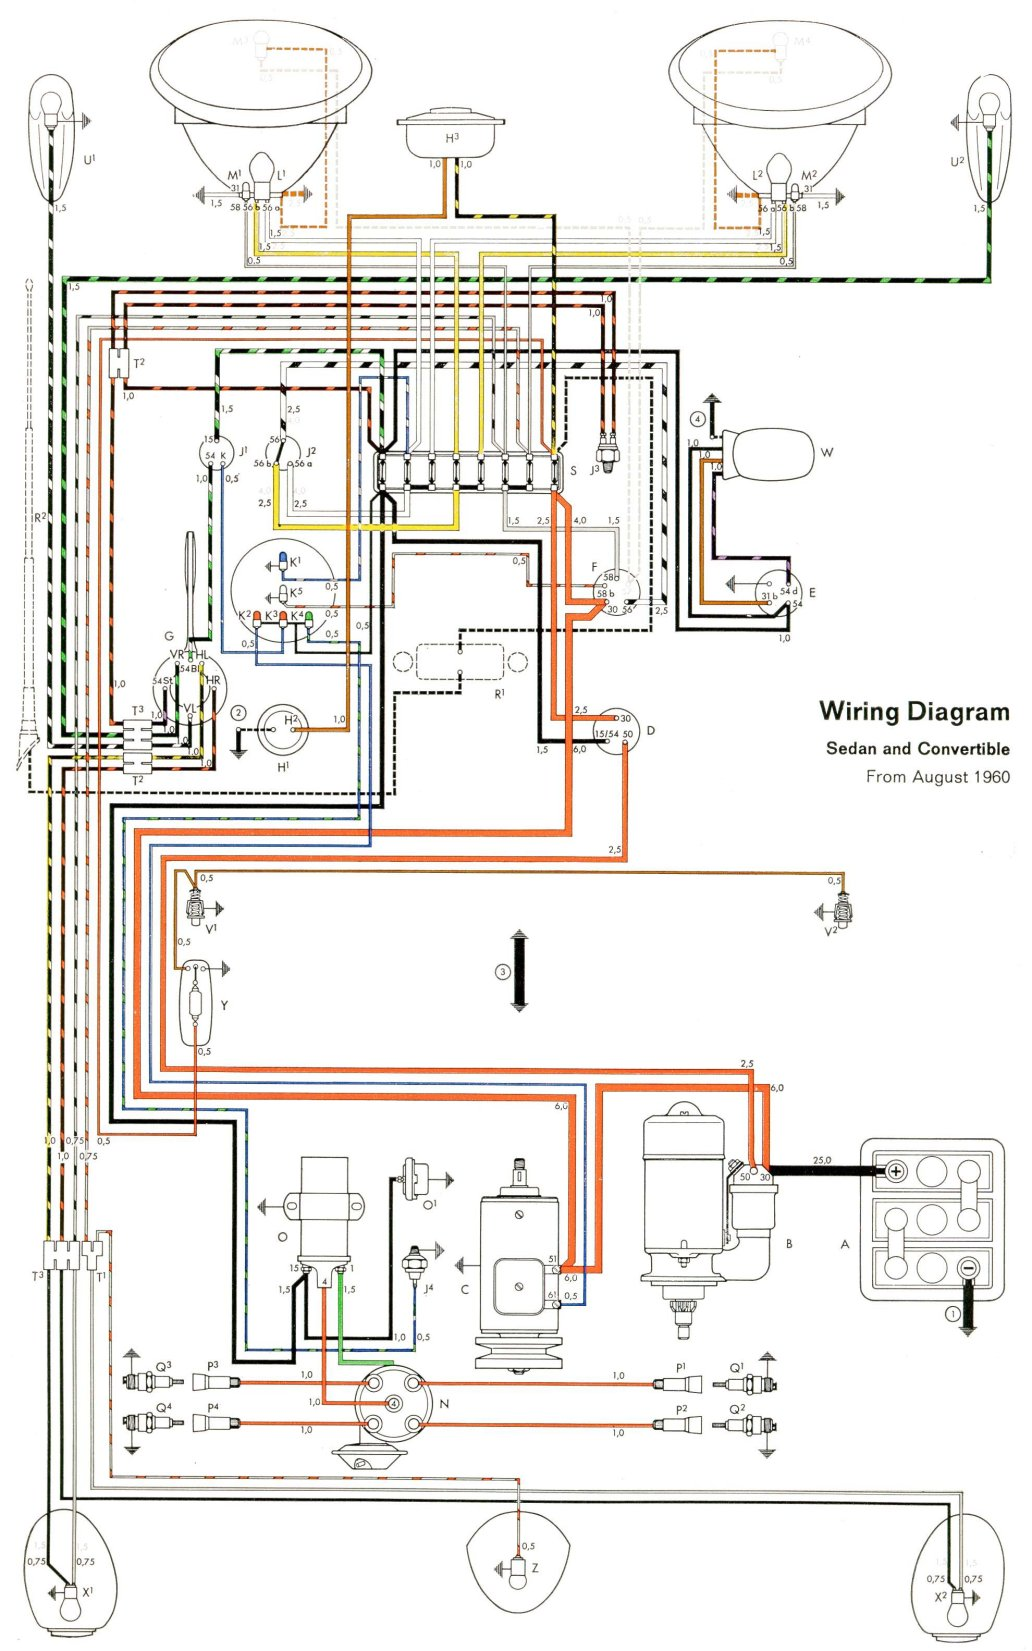 bug_61 thesamba com type 1 wiring diagrams 77 VW Van Wiring Diagram at readyjetset.co